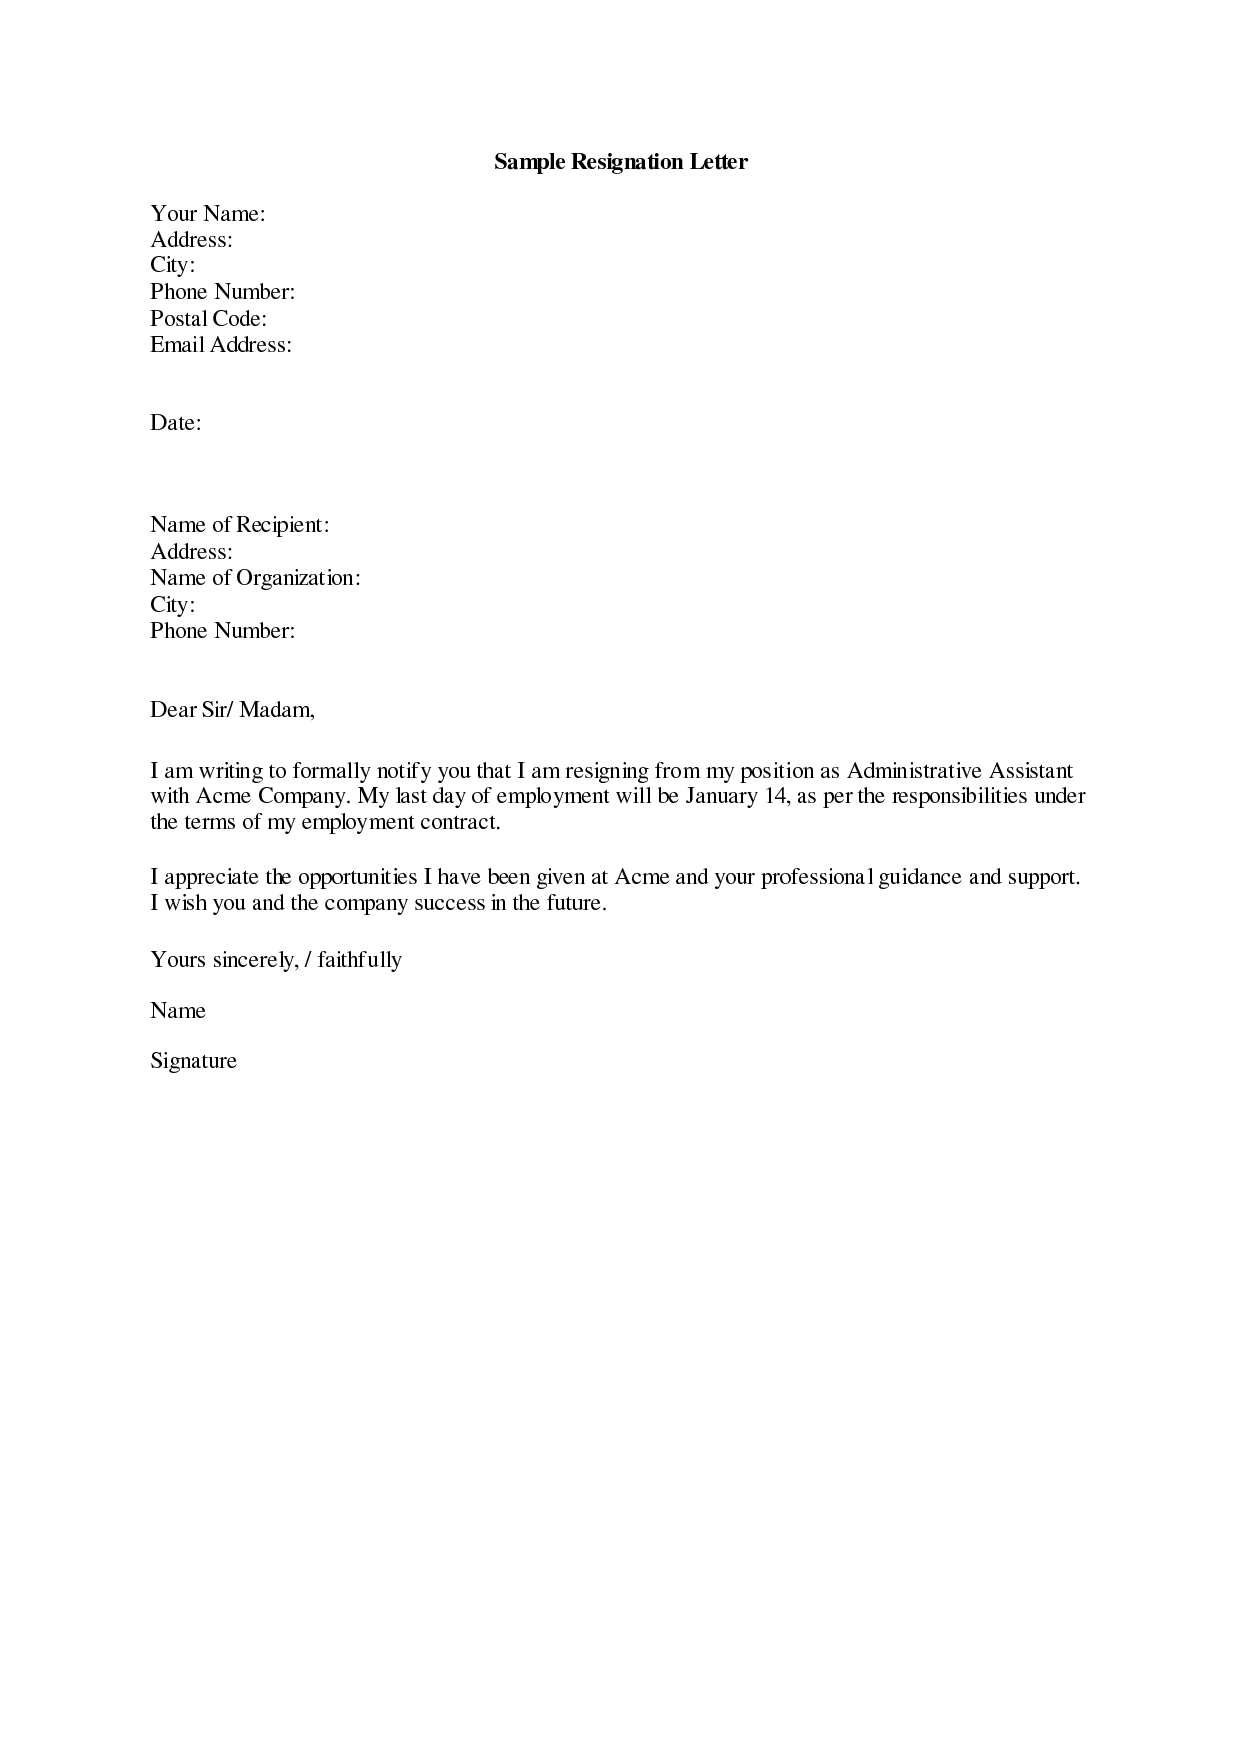 Resignation-Letter-Sample-19   - Letter Of Resignation | Ankit